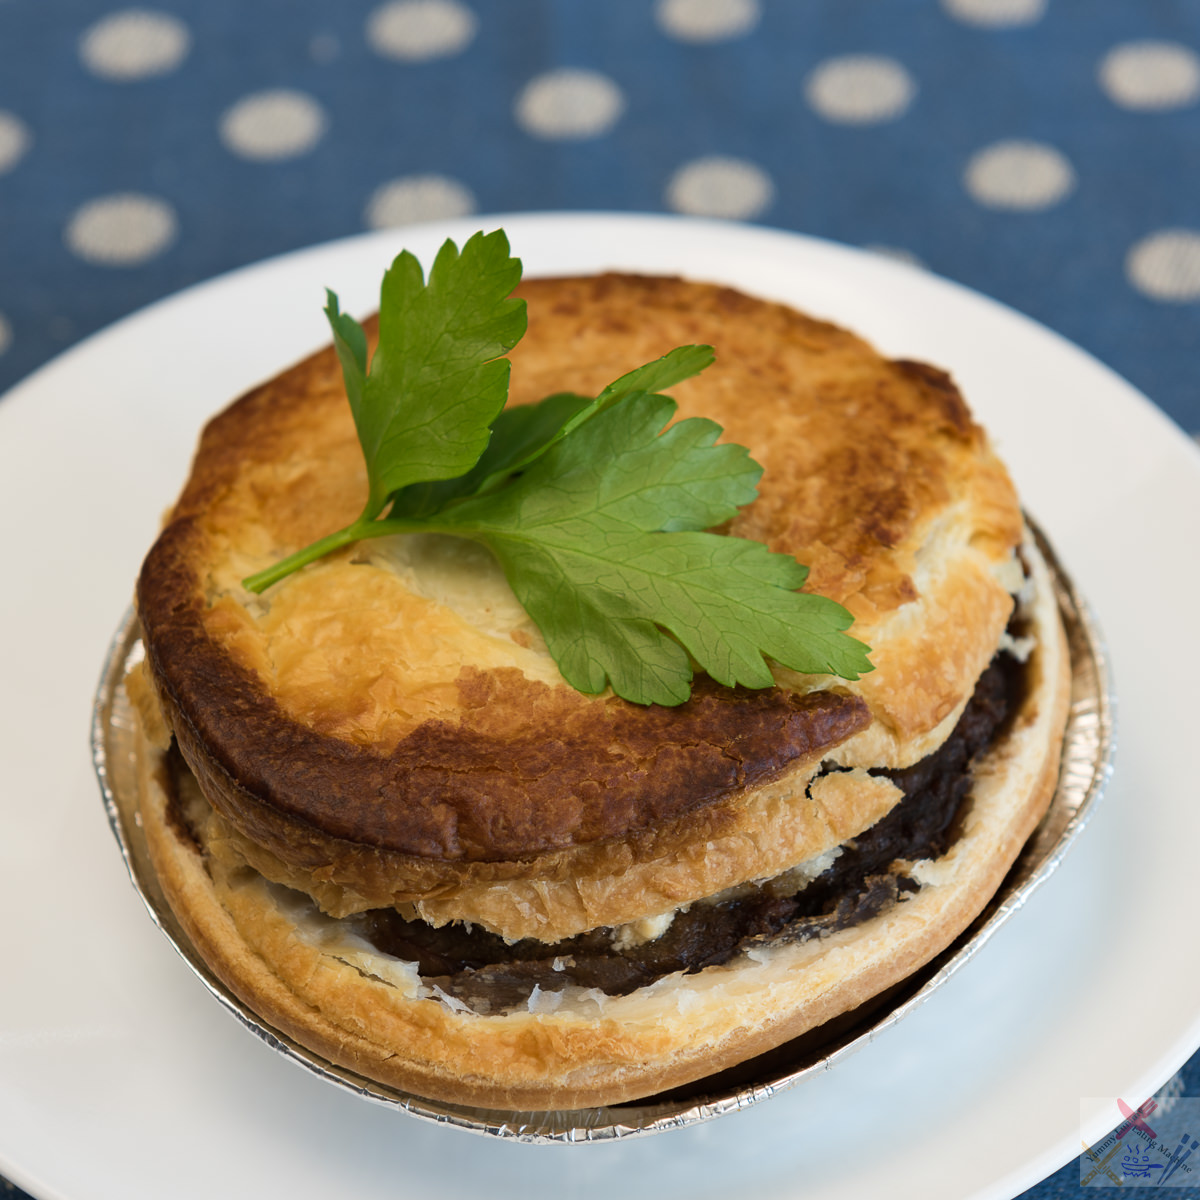 Garlo's Beef and mushroom pie augmented with cream cheese and Worcestershire sauce Gary Lum